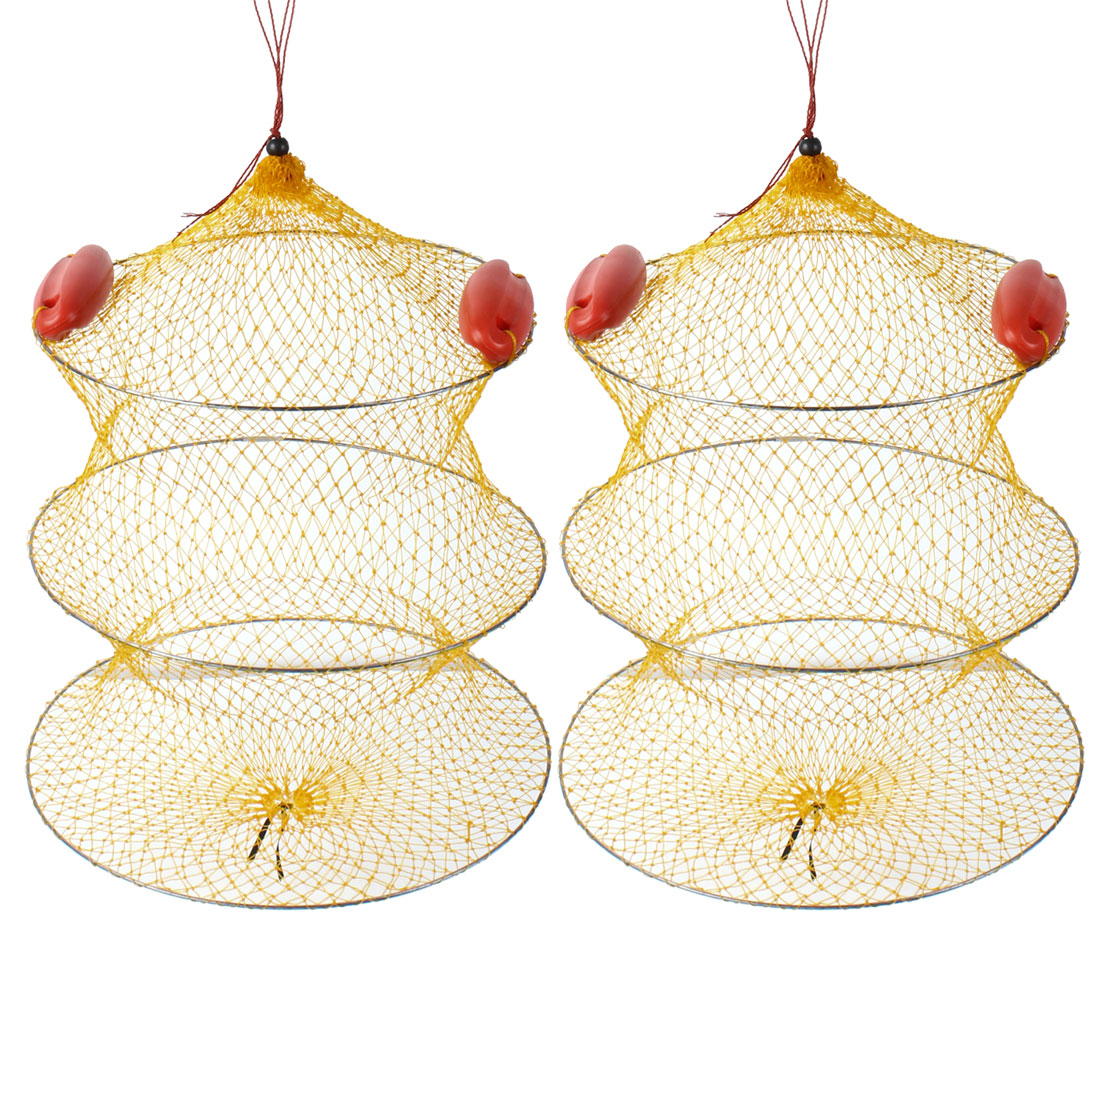 2 Pcs Yellow Nylon Foldable 2 Sections Crab Lobster Fish Cage Fishing Net